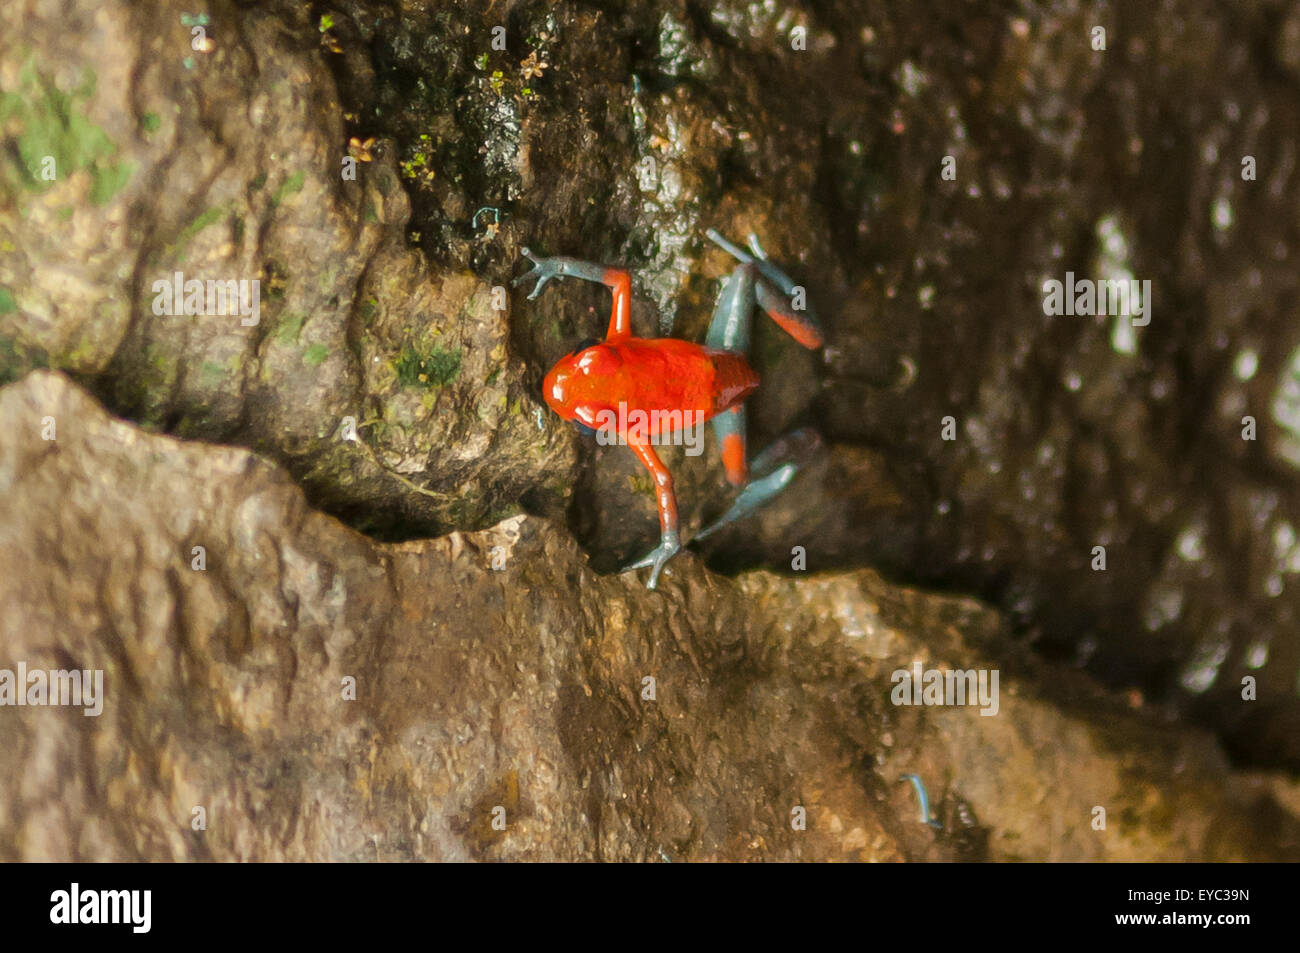 Oophaga pumilio, Strawberry Poison Dart Frog, La Paz Waterfall Gardens, Costa Rica - Stock Image